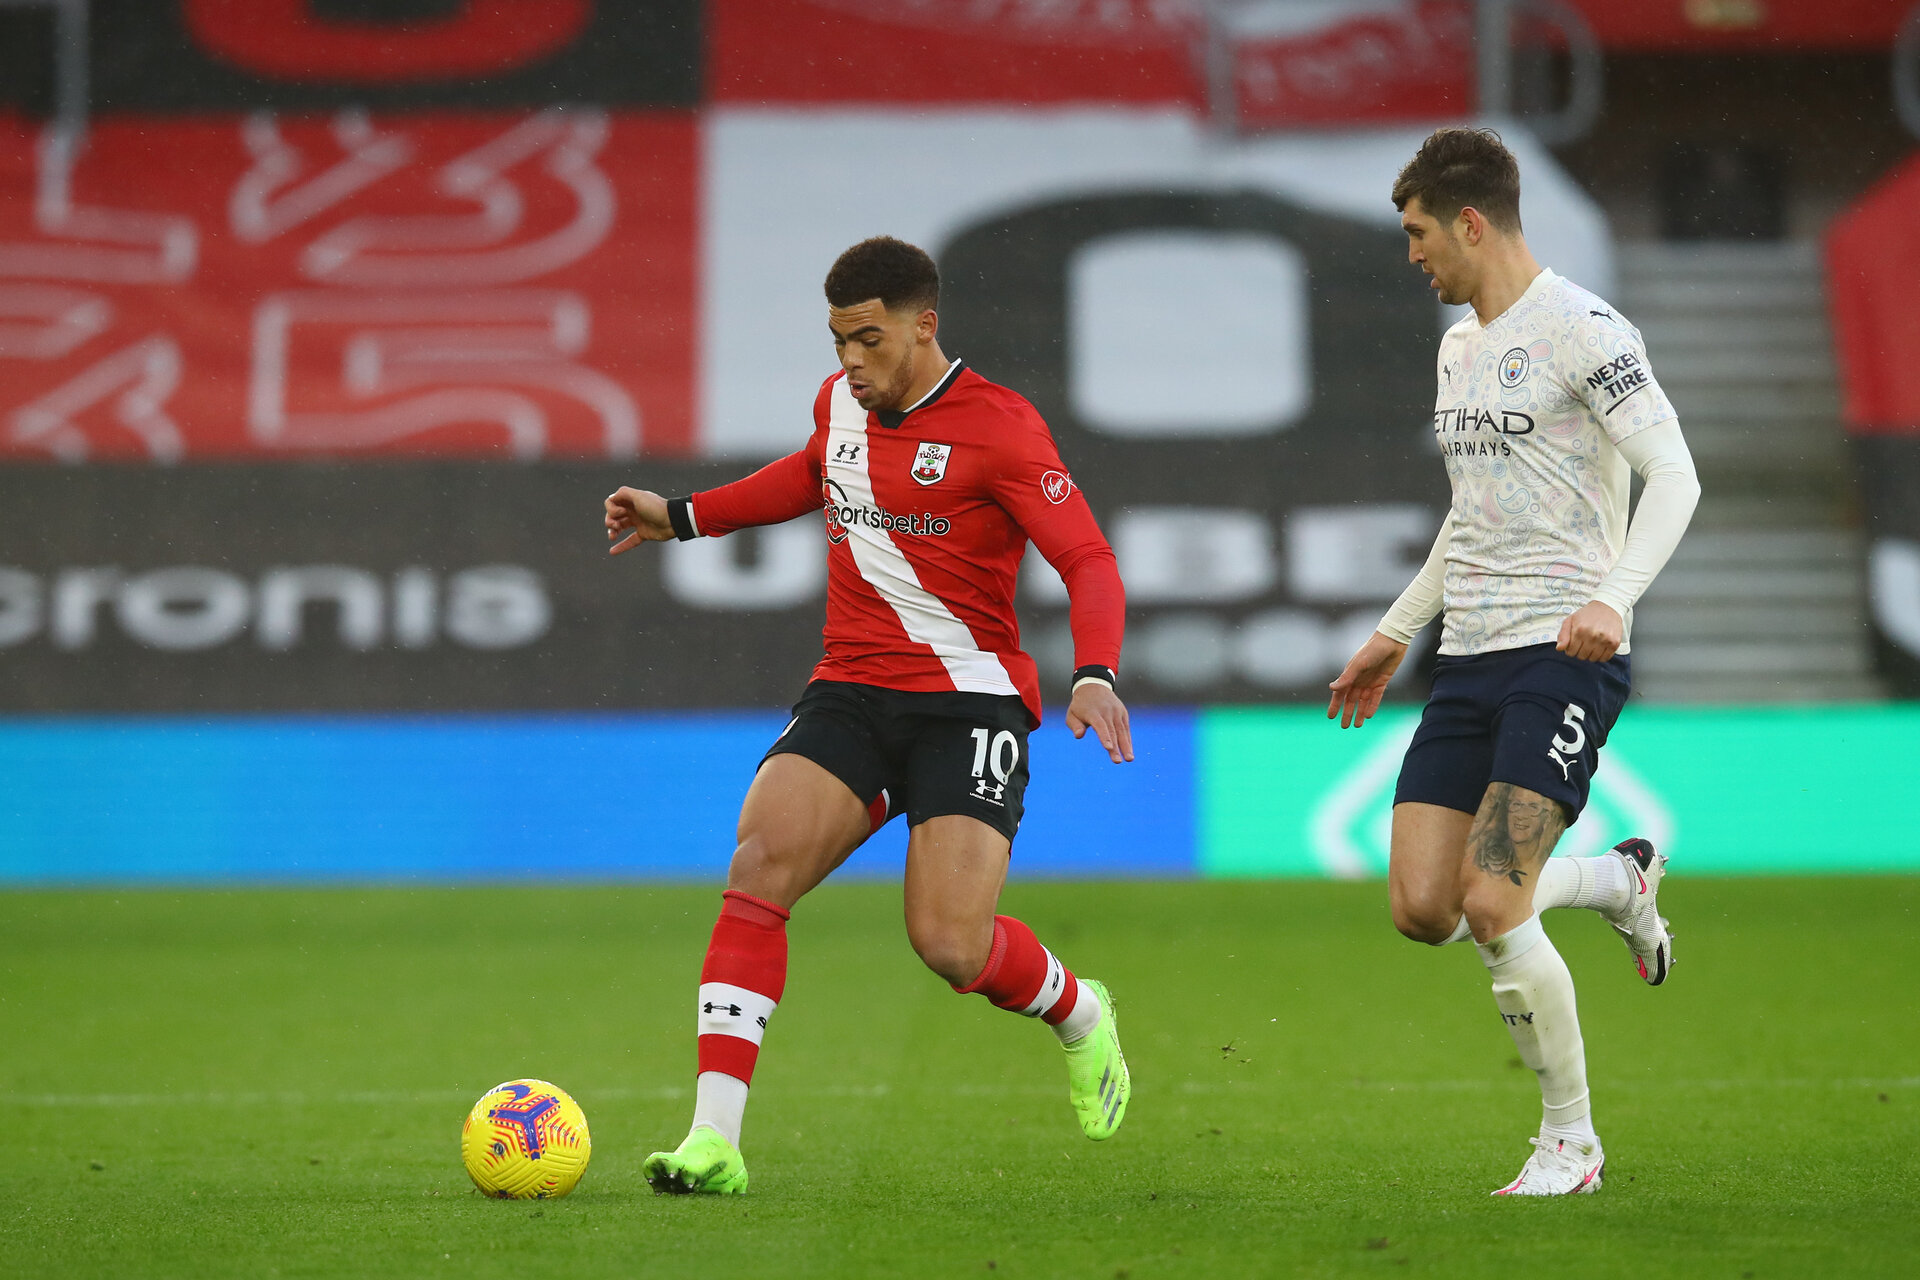 SOUTHAMPTON, ENGLAND - DECEMBER 19: Ché Adams (L) of Southampton and John Stones (R) Manchester City during the Premier League match between Southampton and Manchester City at St Mary's Stadium on December 19, 2020 in Southampton, England. A limited number of fans (2000) are welcomed back to stadiums to watch elite football across England. This was following easing of restrictions on spectators in tiers one and two areas only. (Photo by Matt Watson/Southampton FC via Getty Images)